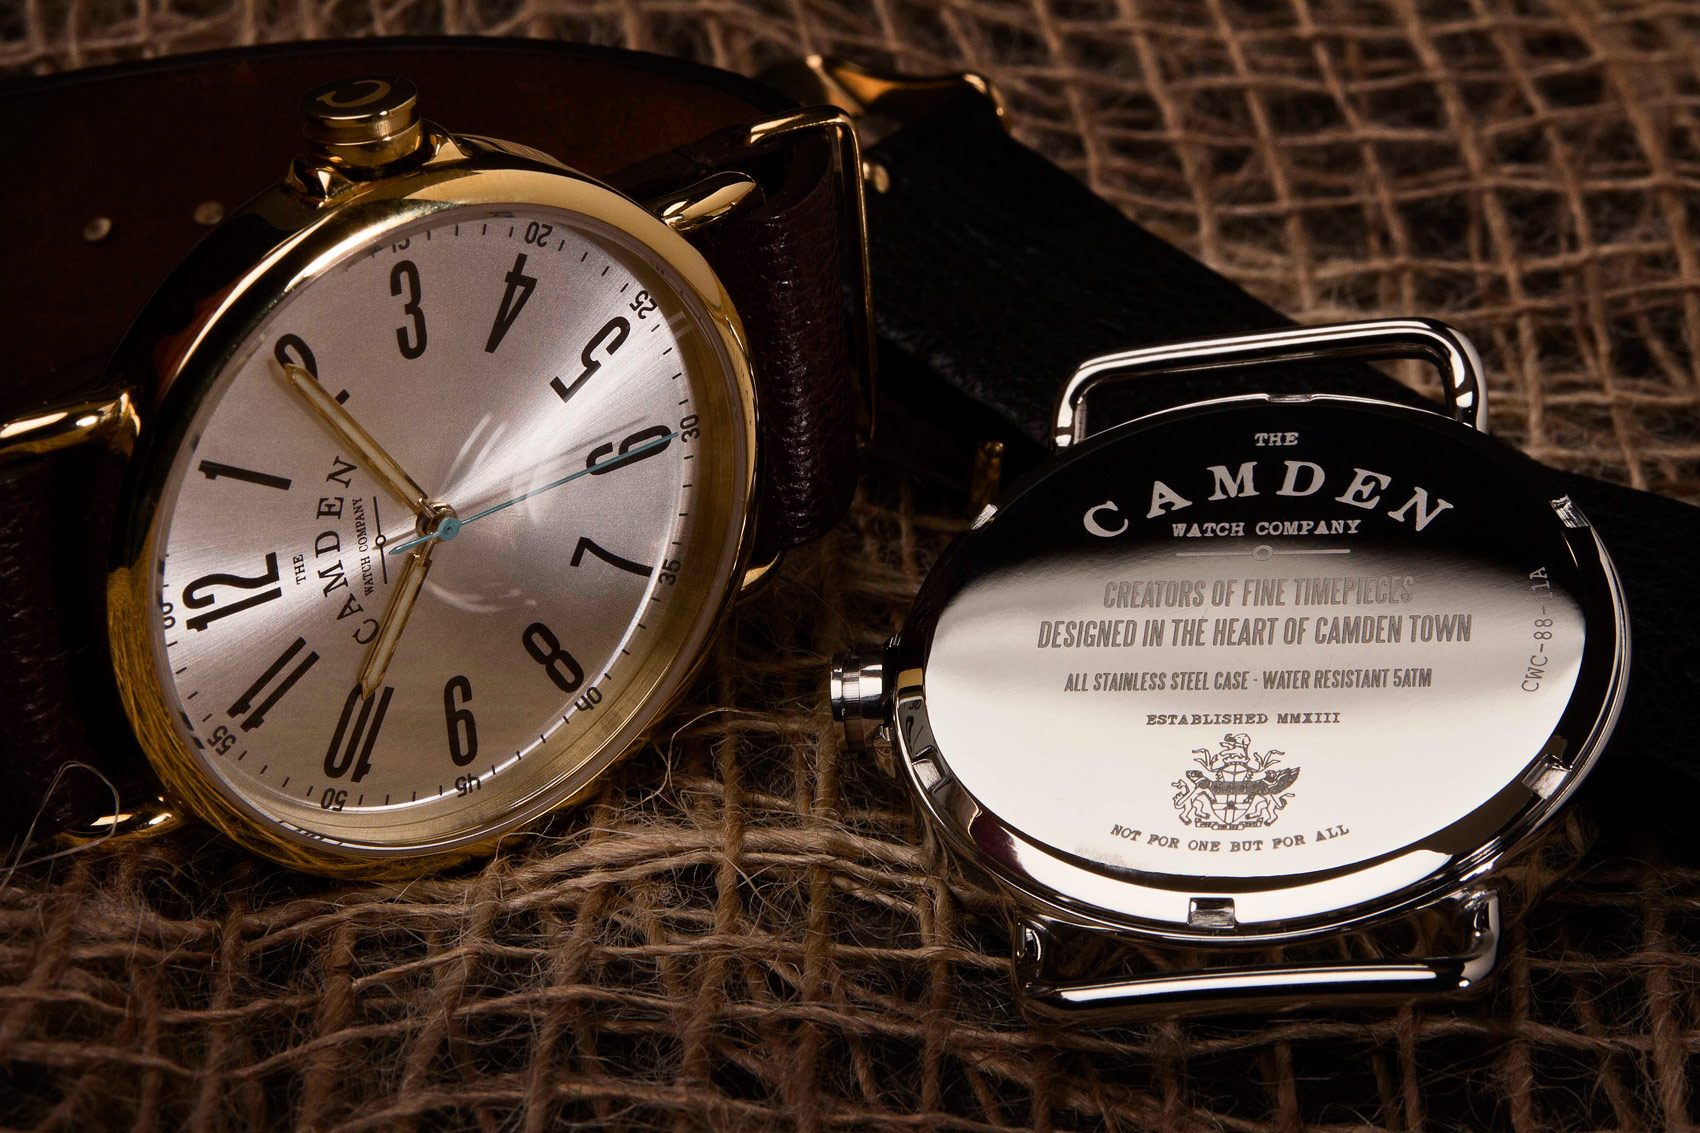 Henry McIntosh meets the Camden Watch Company. A brand channelling the best of Camden's rich Victorian heritage into stunning timepieces